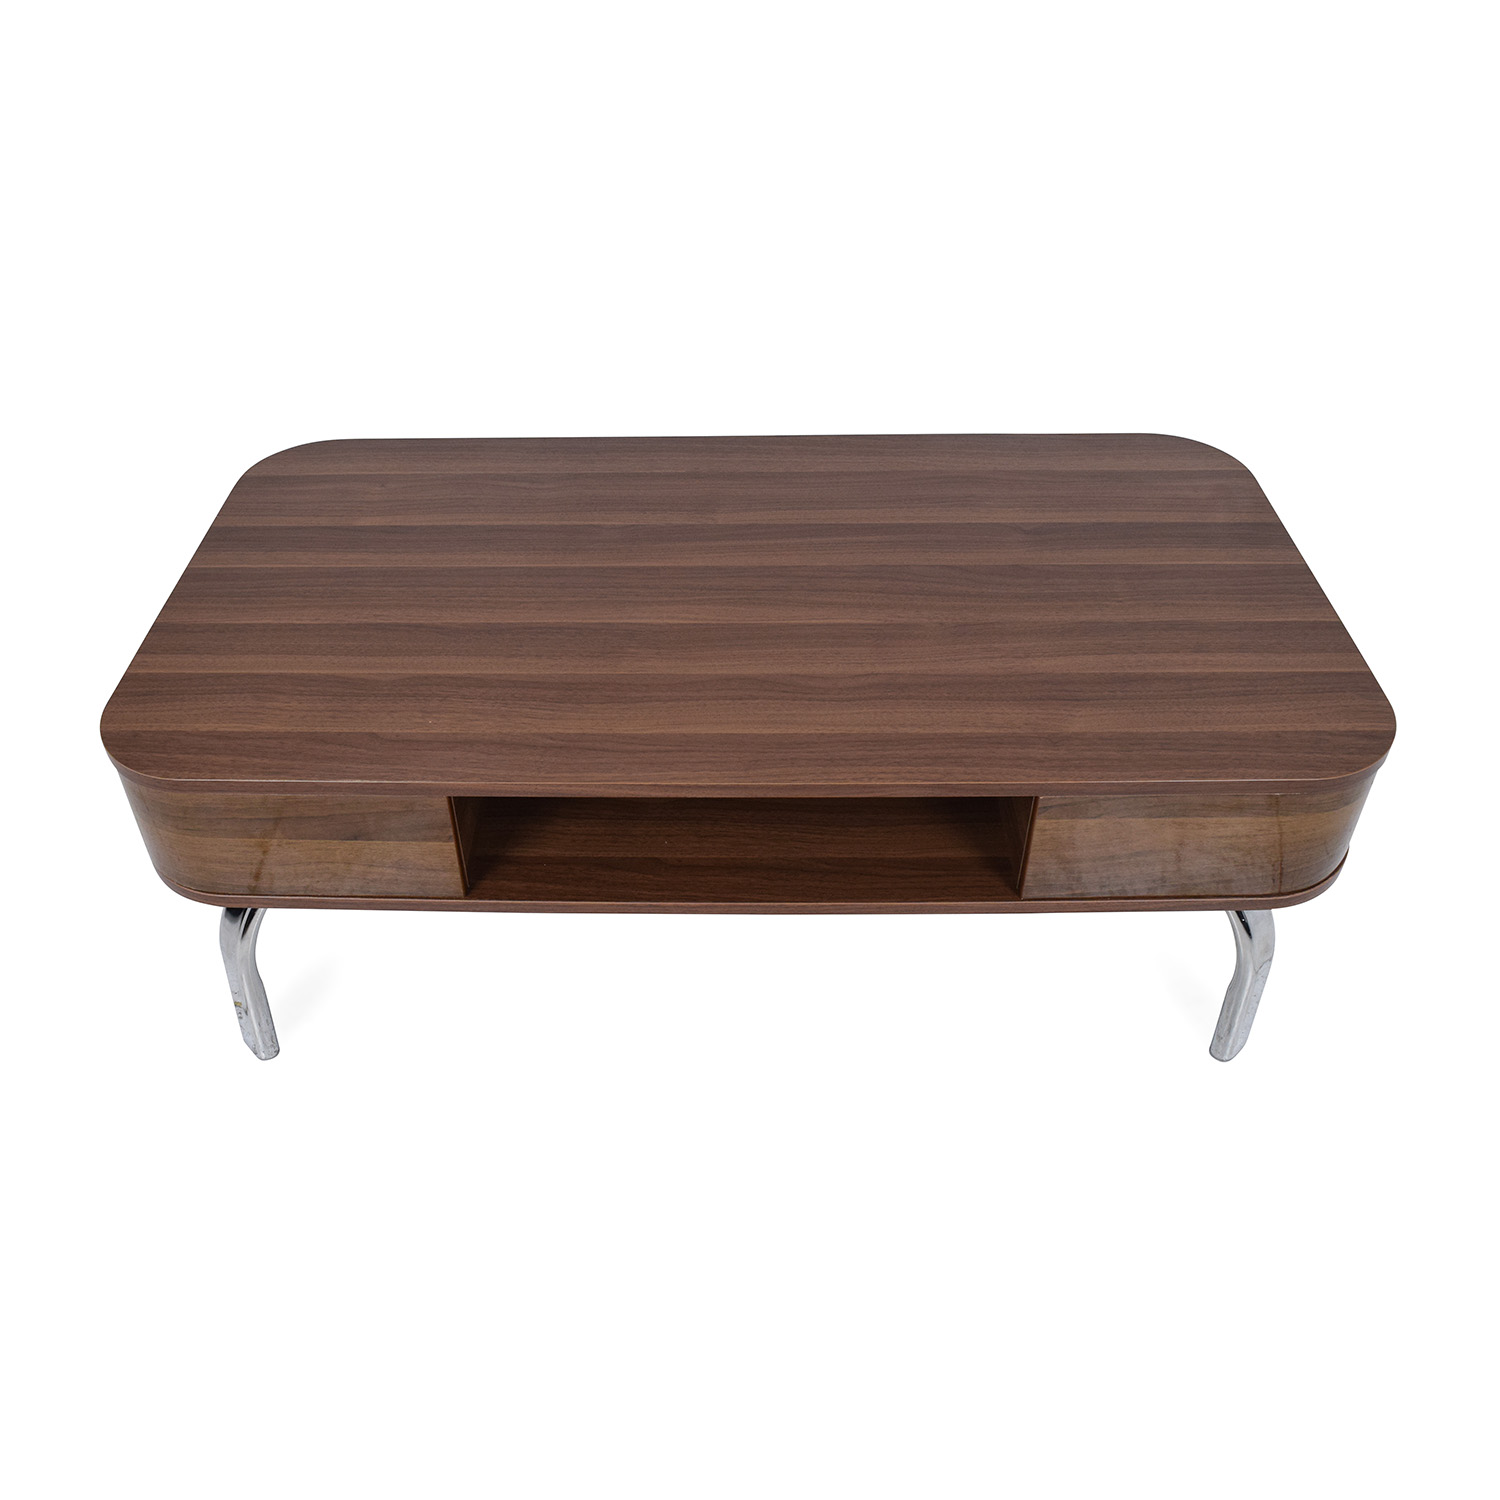 ioHOMES ioHOMES Coffee Table Brown